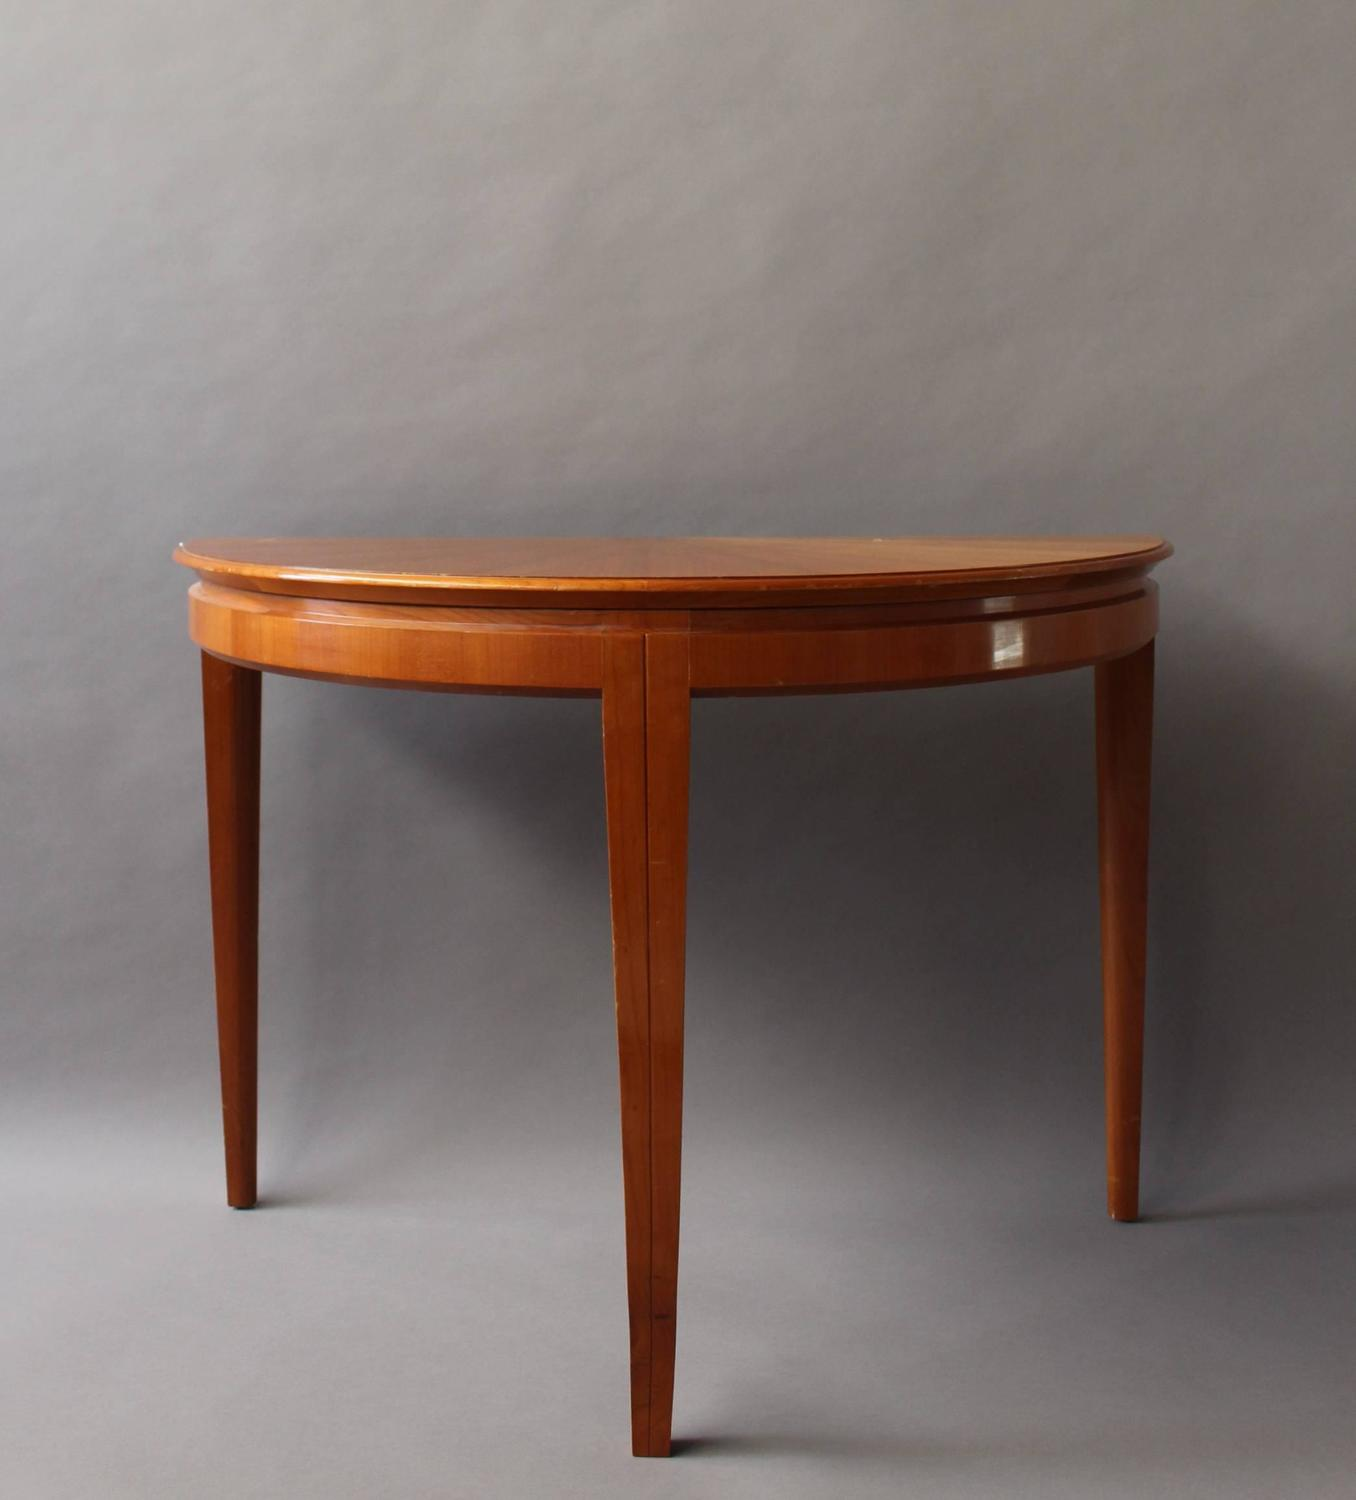 Fine Dining Room Tables: Fine French 1950s Cherry Round Table Divisible In Two Demilune Tables For Sale At 1stdibs